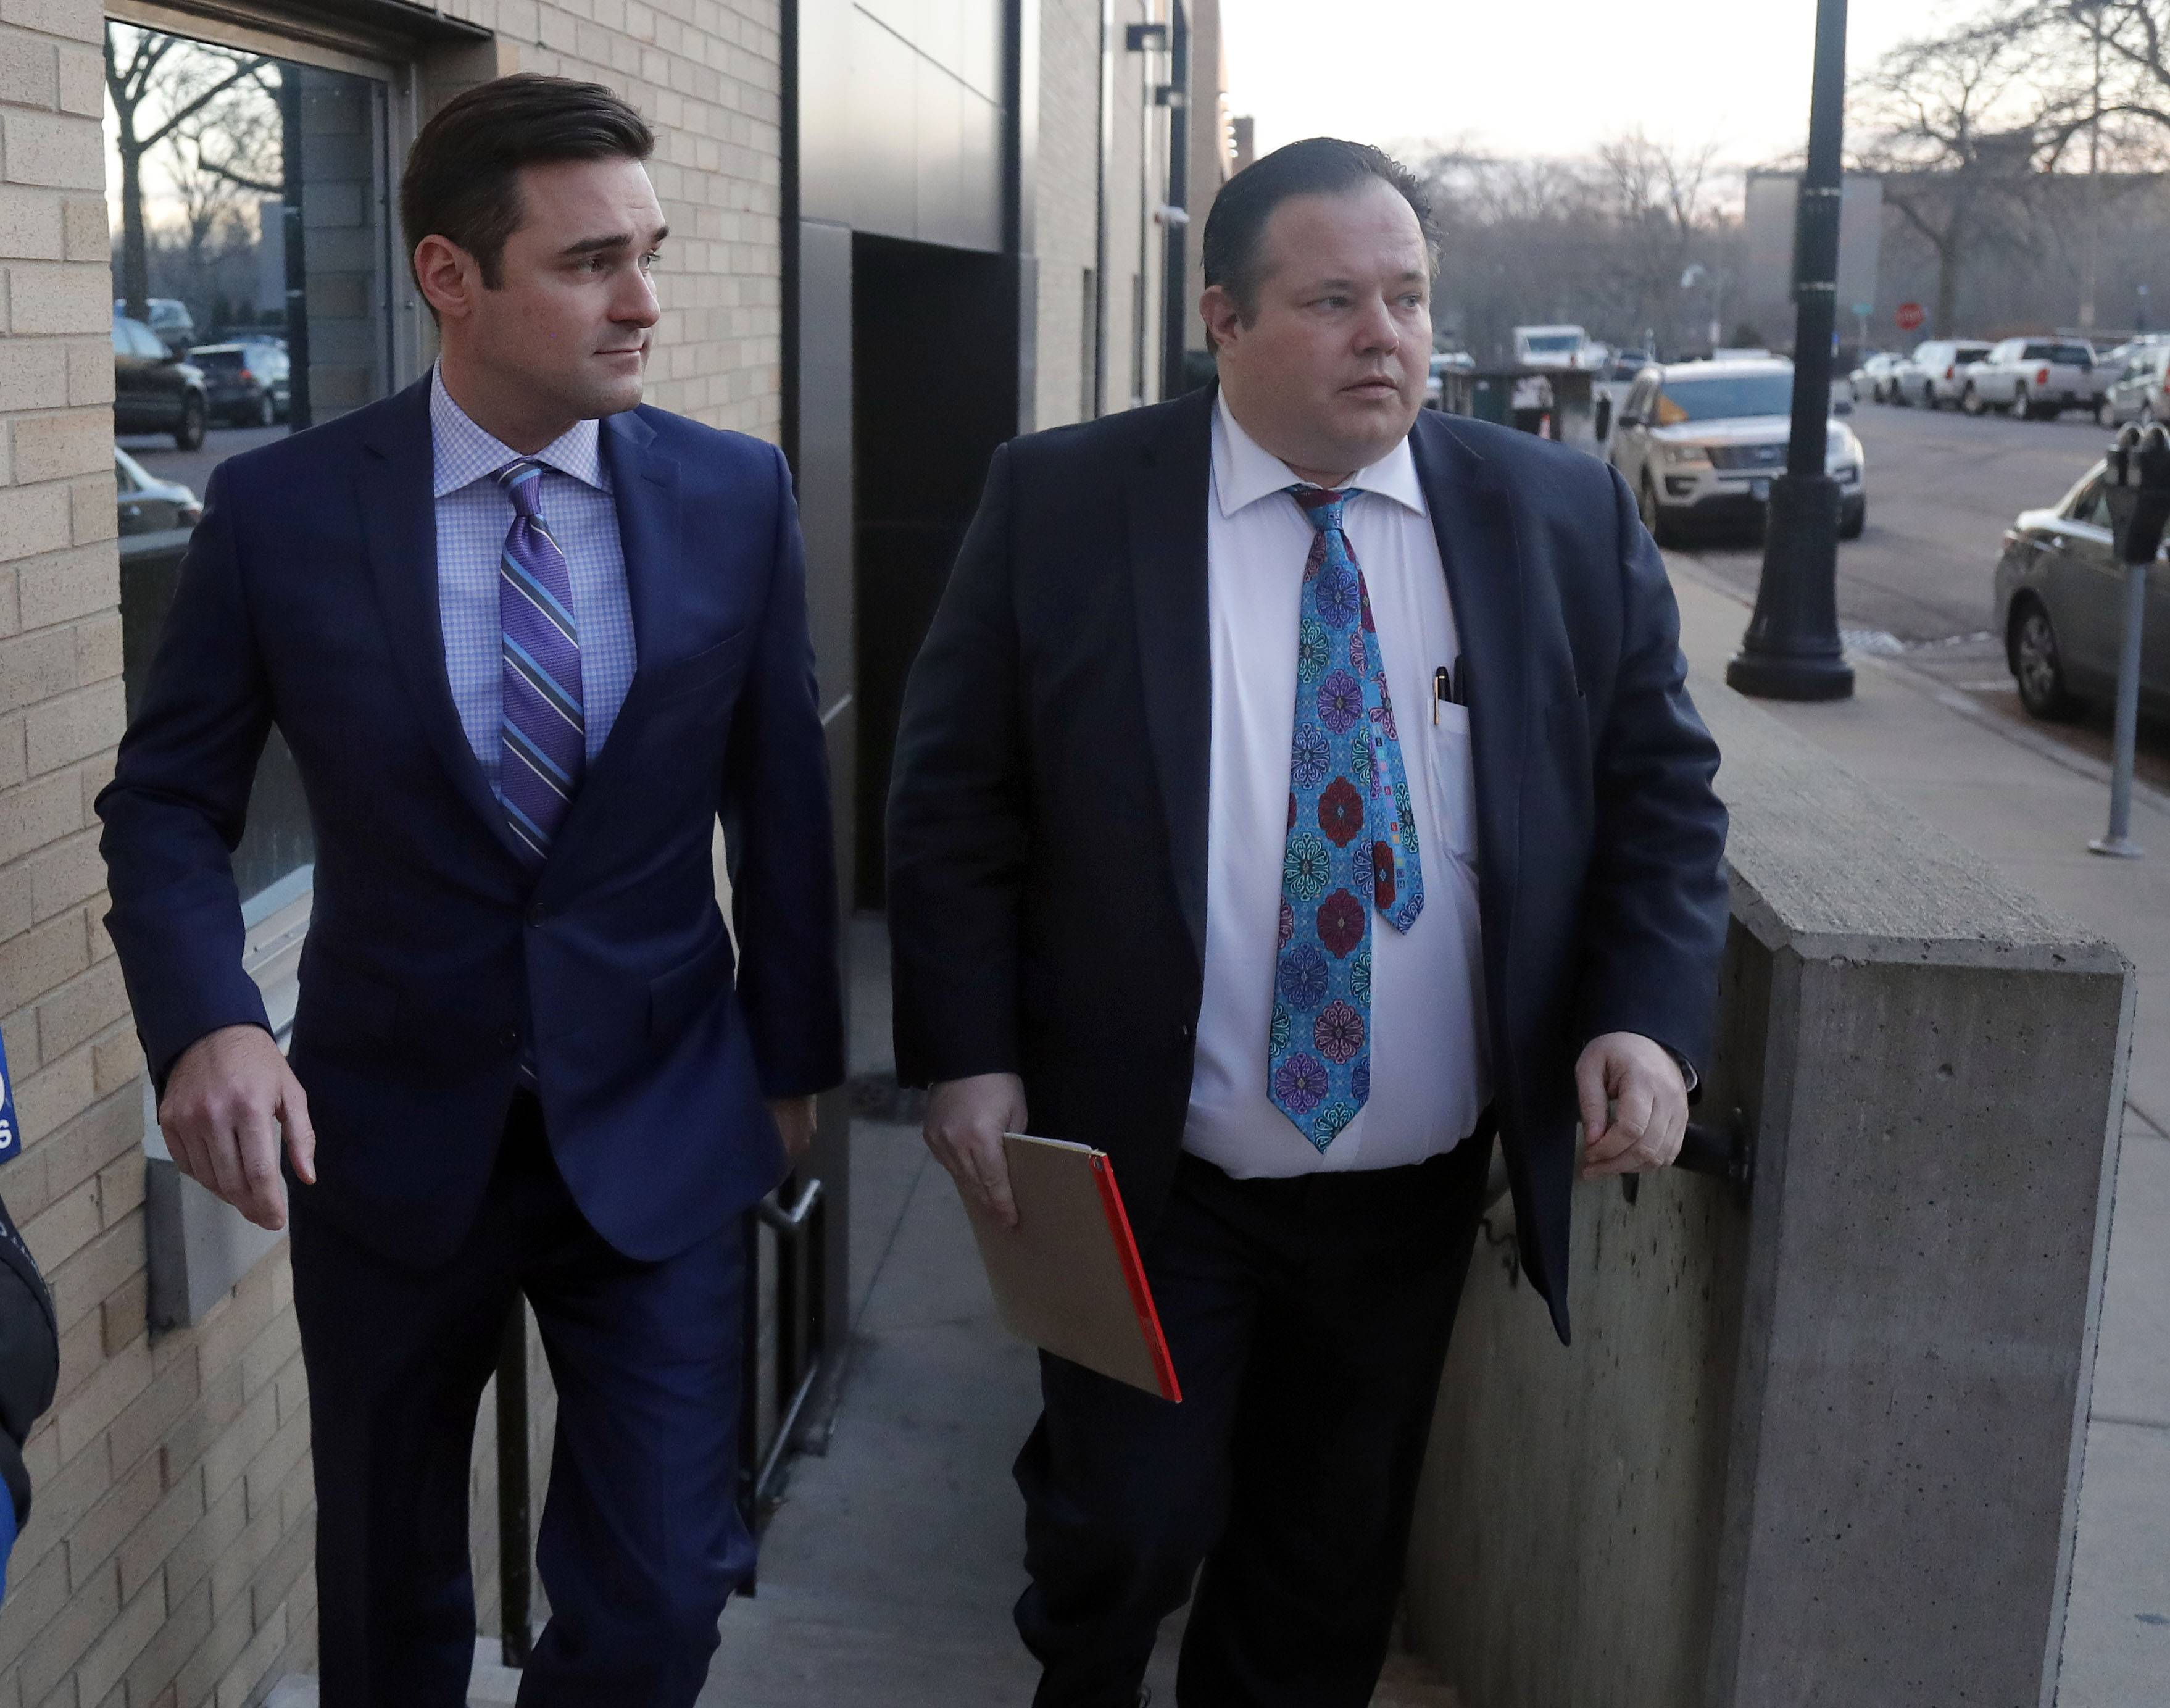 Former state Rep. Nick Sauer, left, leaves the Lake County jail with his lawyer after bonding out Thursday in Waukegan.